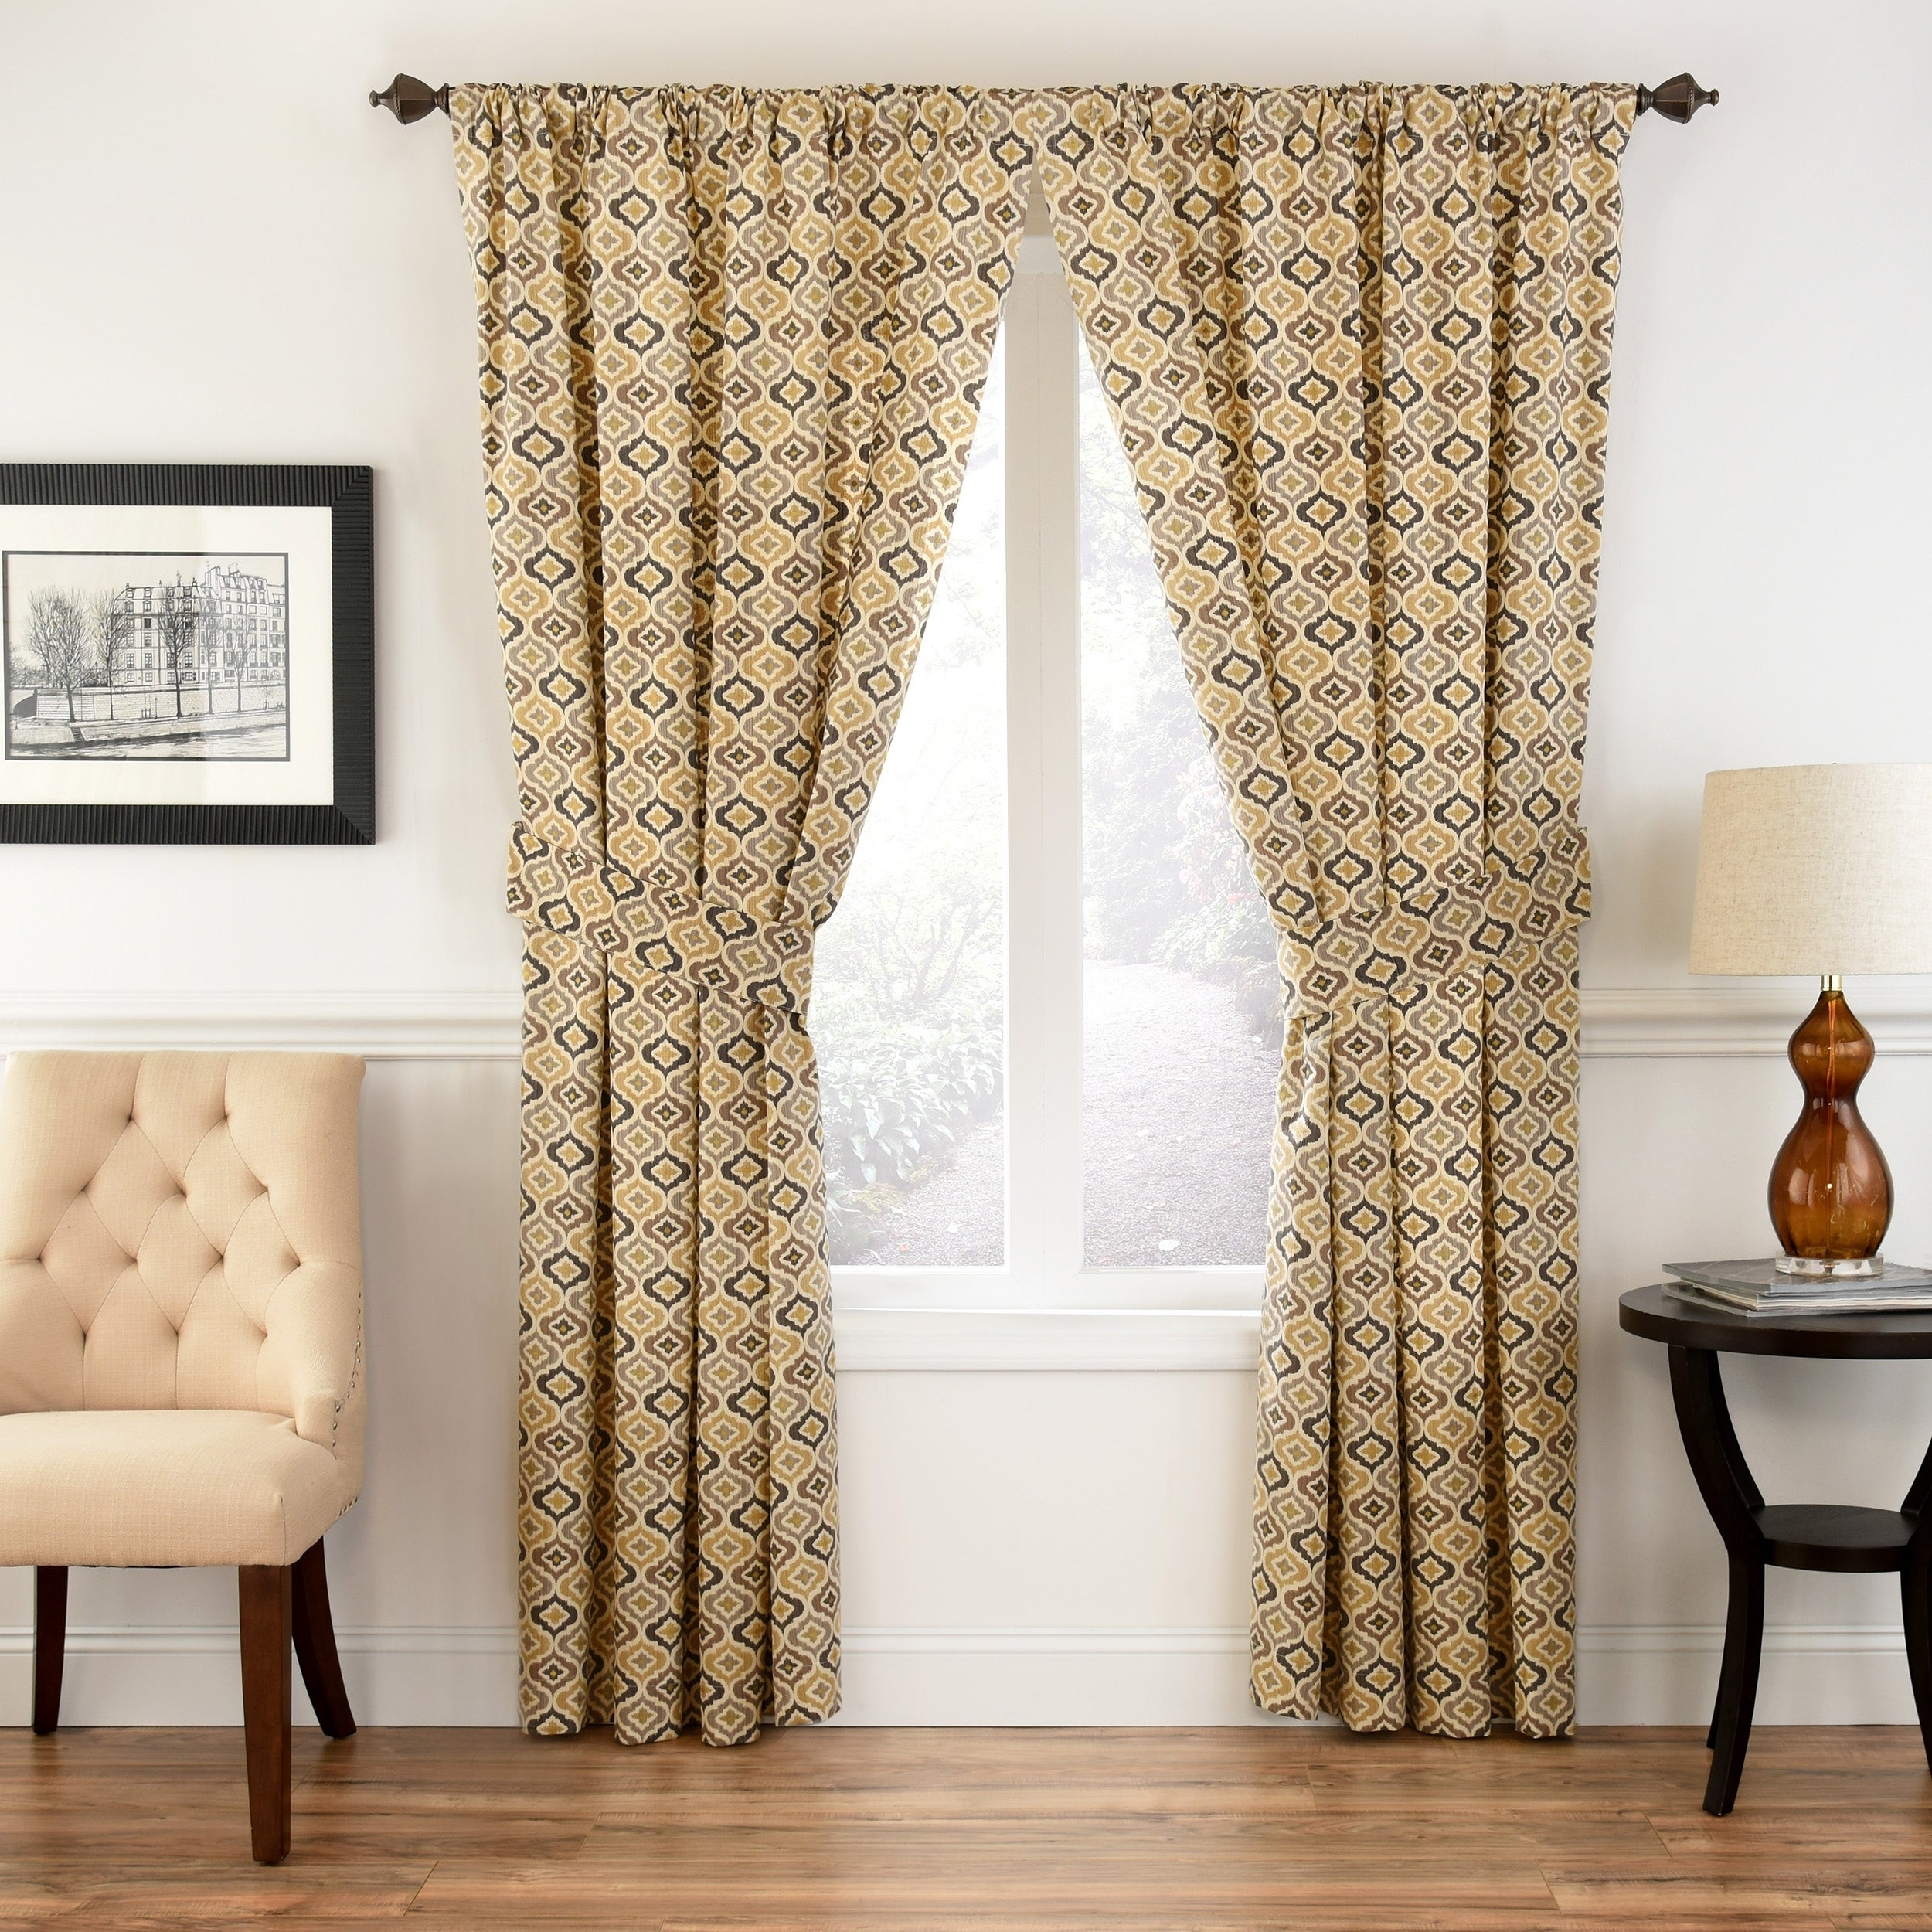 Waverly Drapes Window Treatments Best Home Decorating Ideas